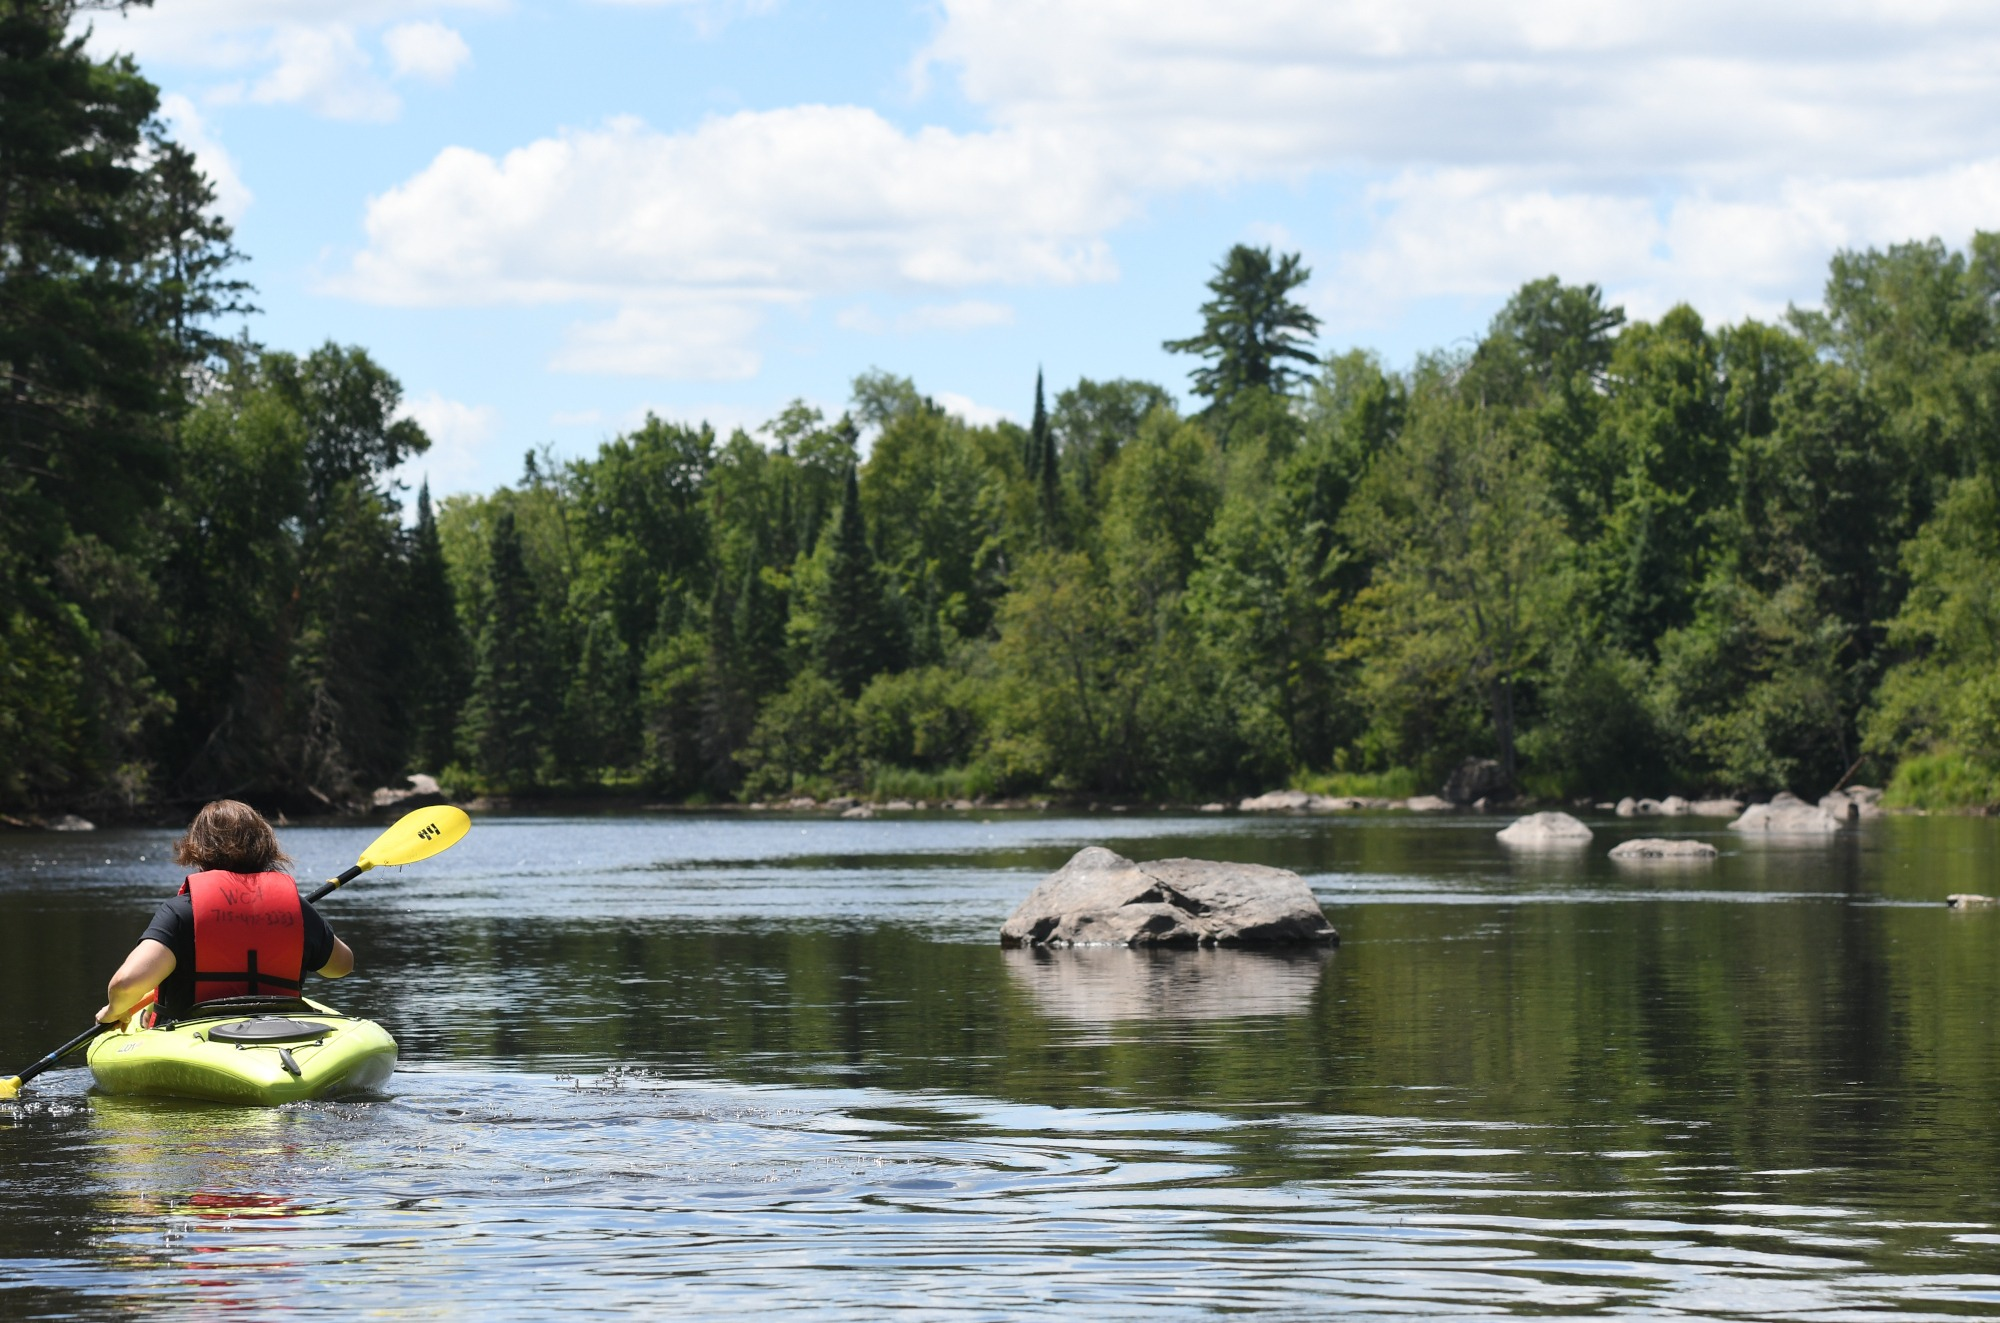 kayaking on the wisconsin river vilas county wisconsin